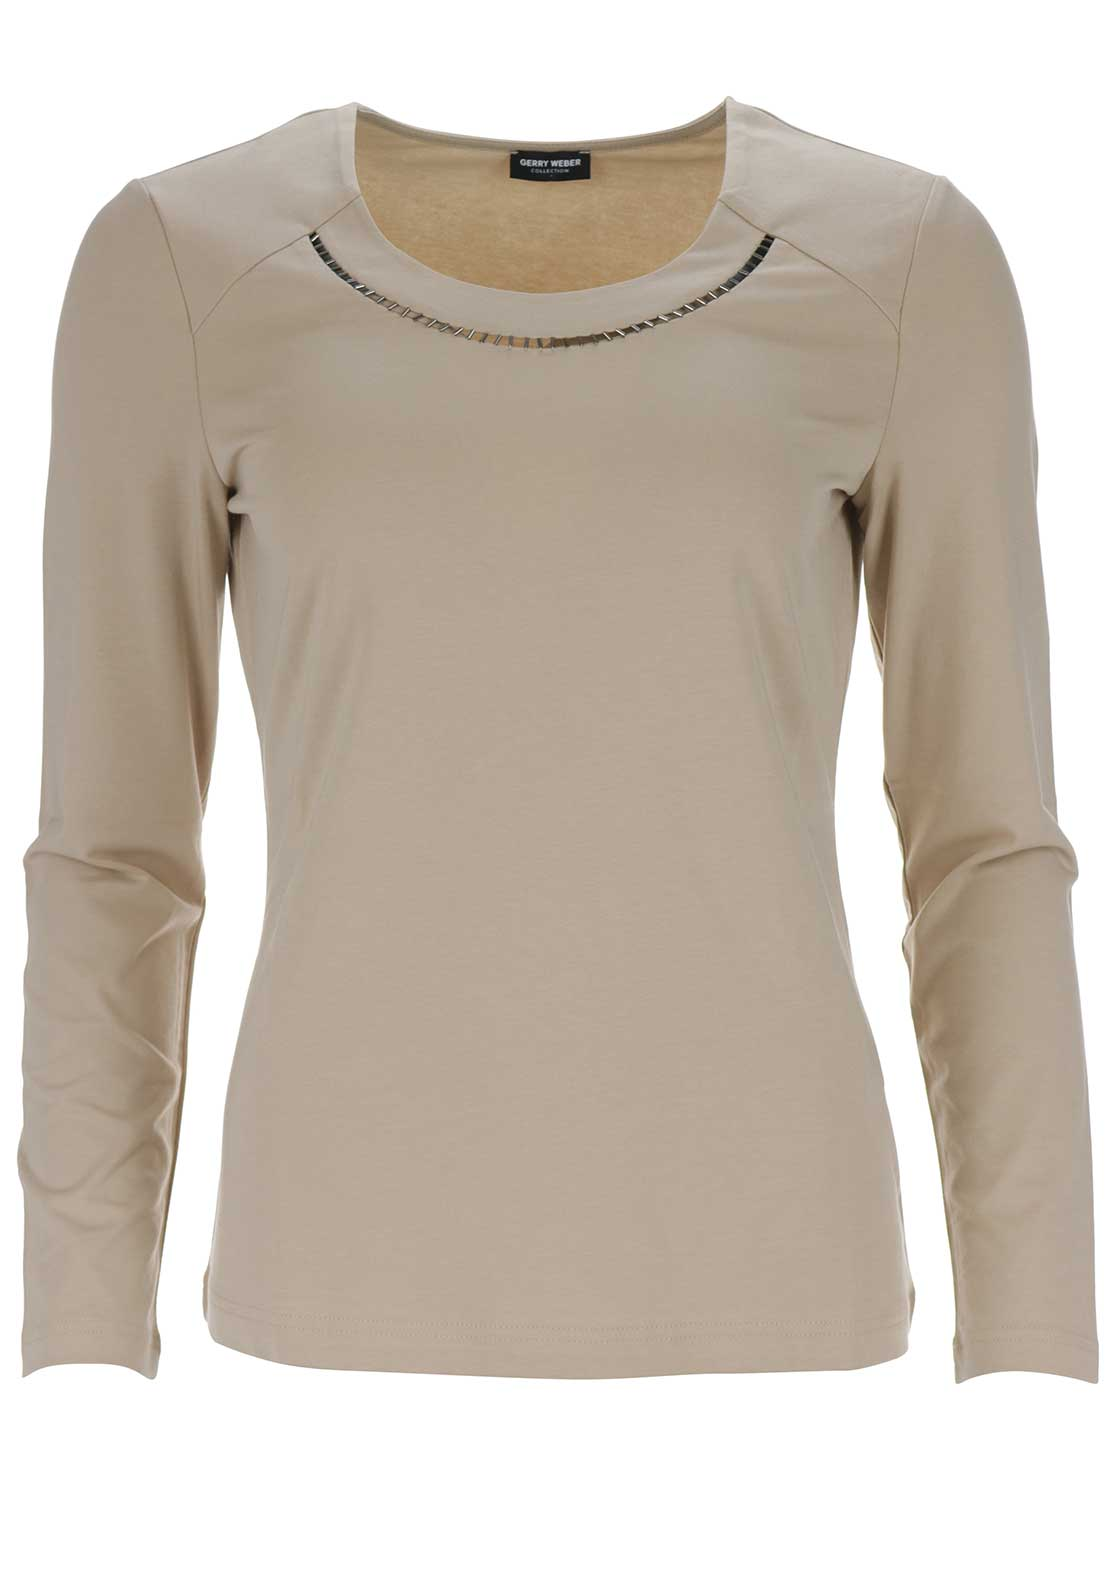 Gerry Weber Sheer Trim Long Sleeve Top, Beige